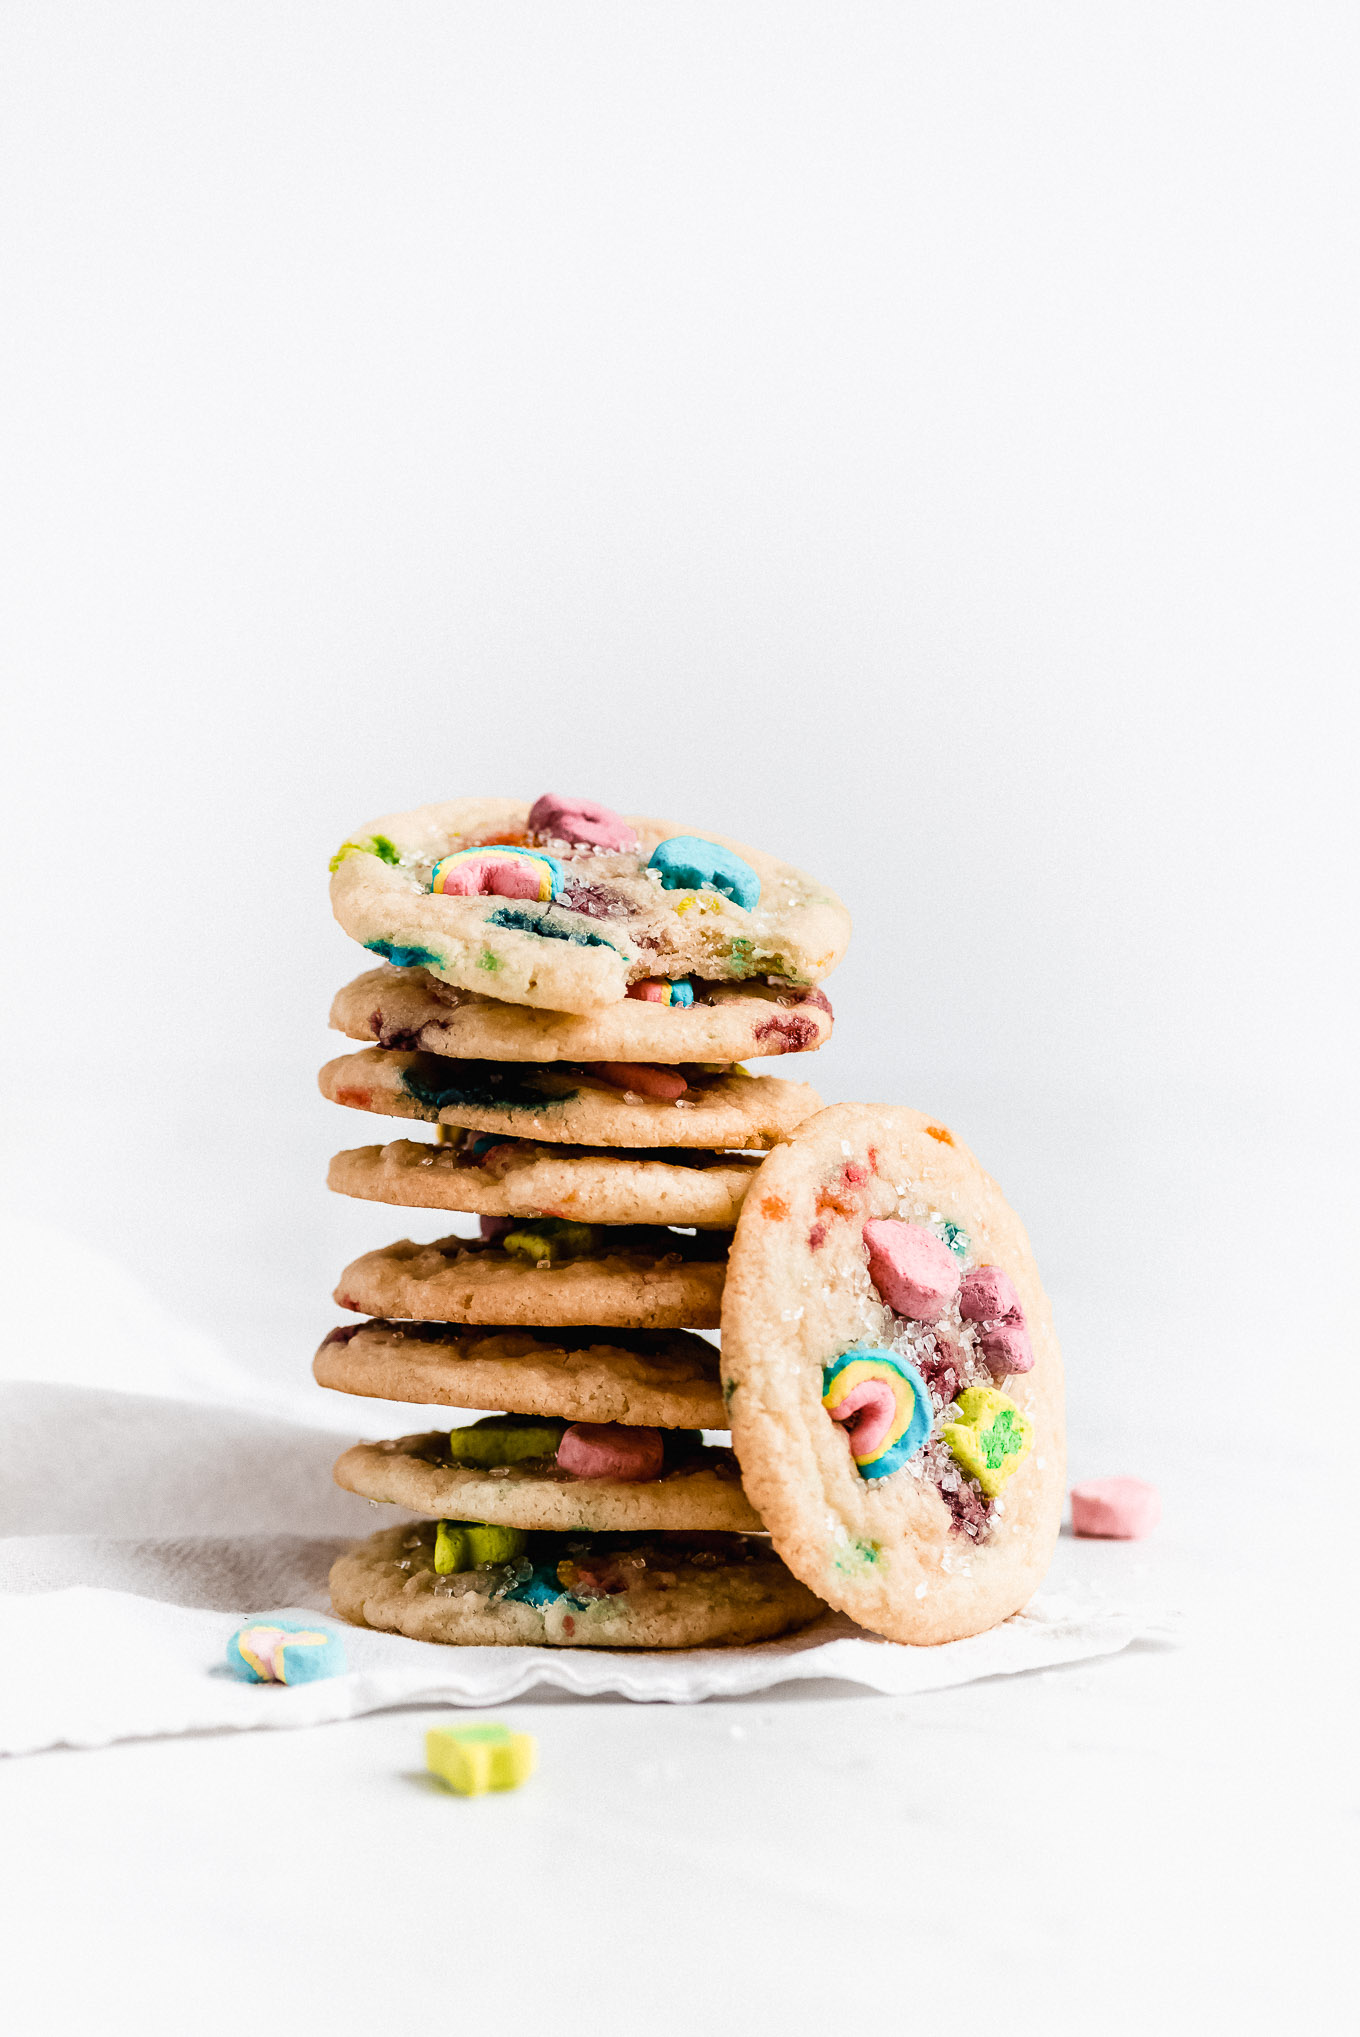 A stack of Lucky Charms Sugar Cookies studded with colorful marshmallows and sparkling with sugar sprinkles.